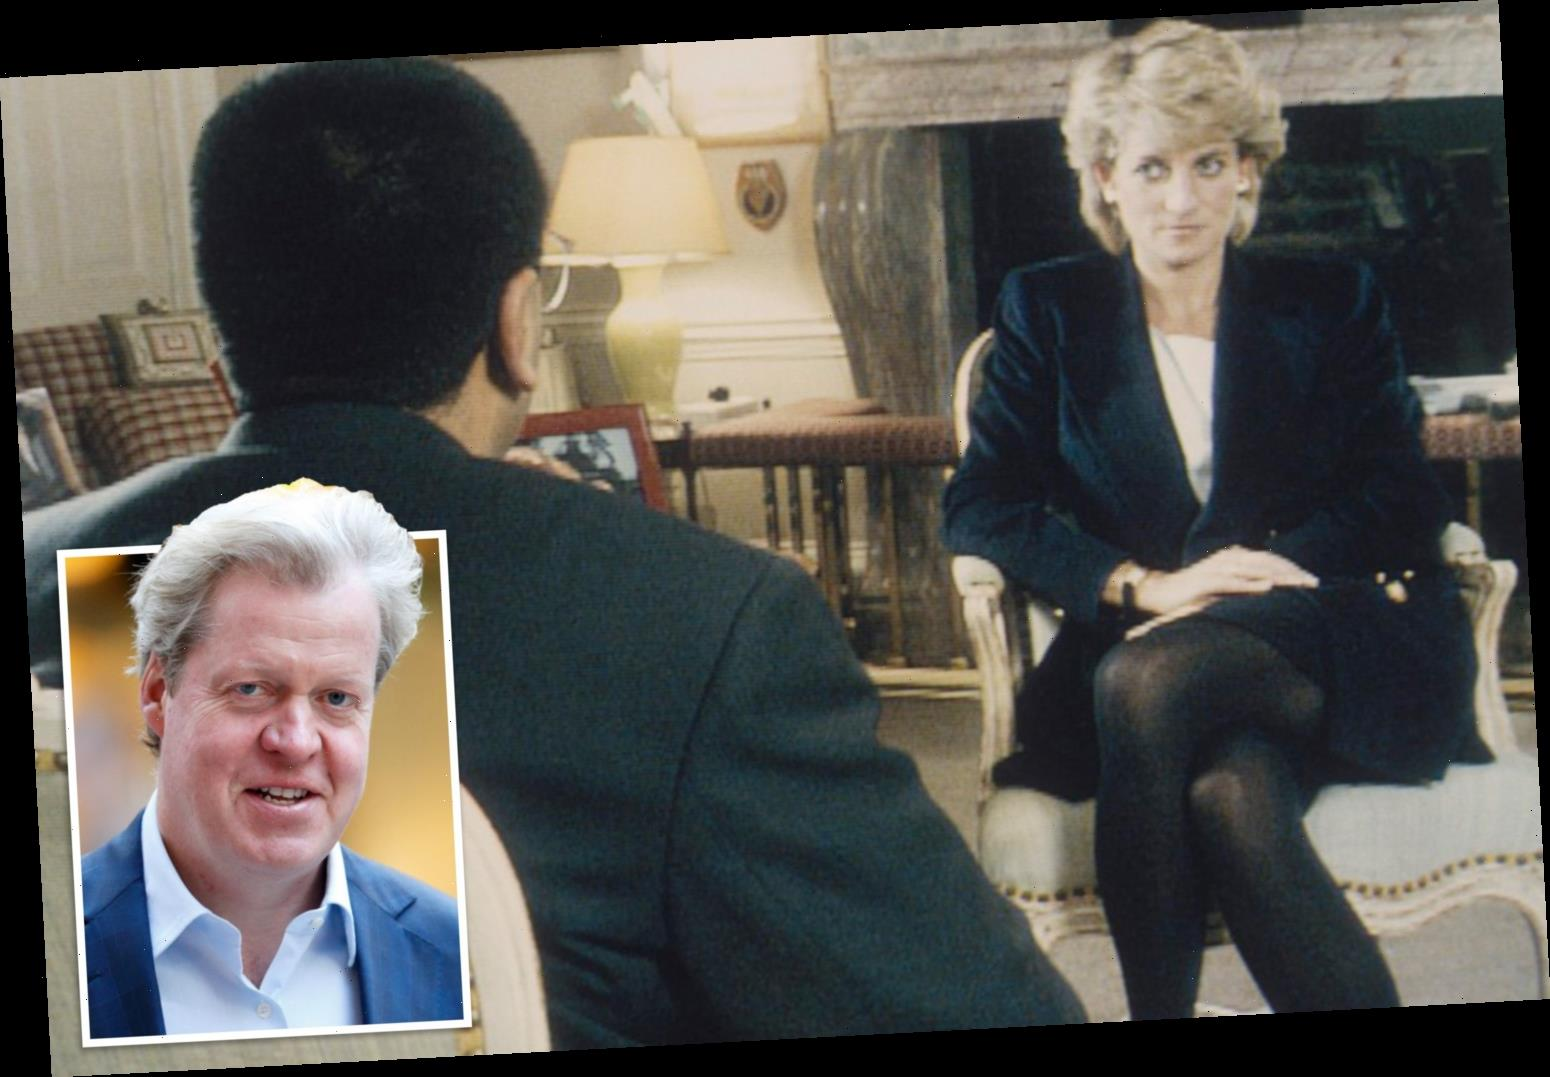 Princess Diana's brother Earl Spencer calls for BBC inquiry amid claims they used forged papers to land Panorama scoop